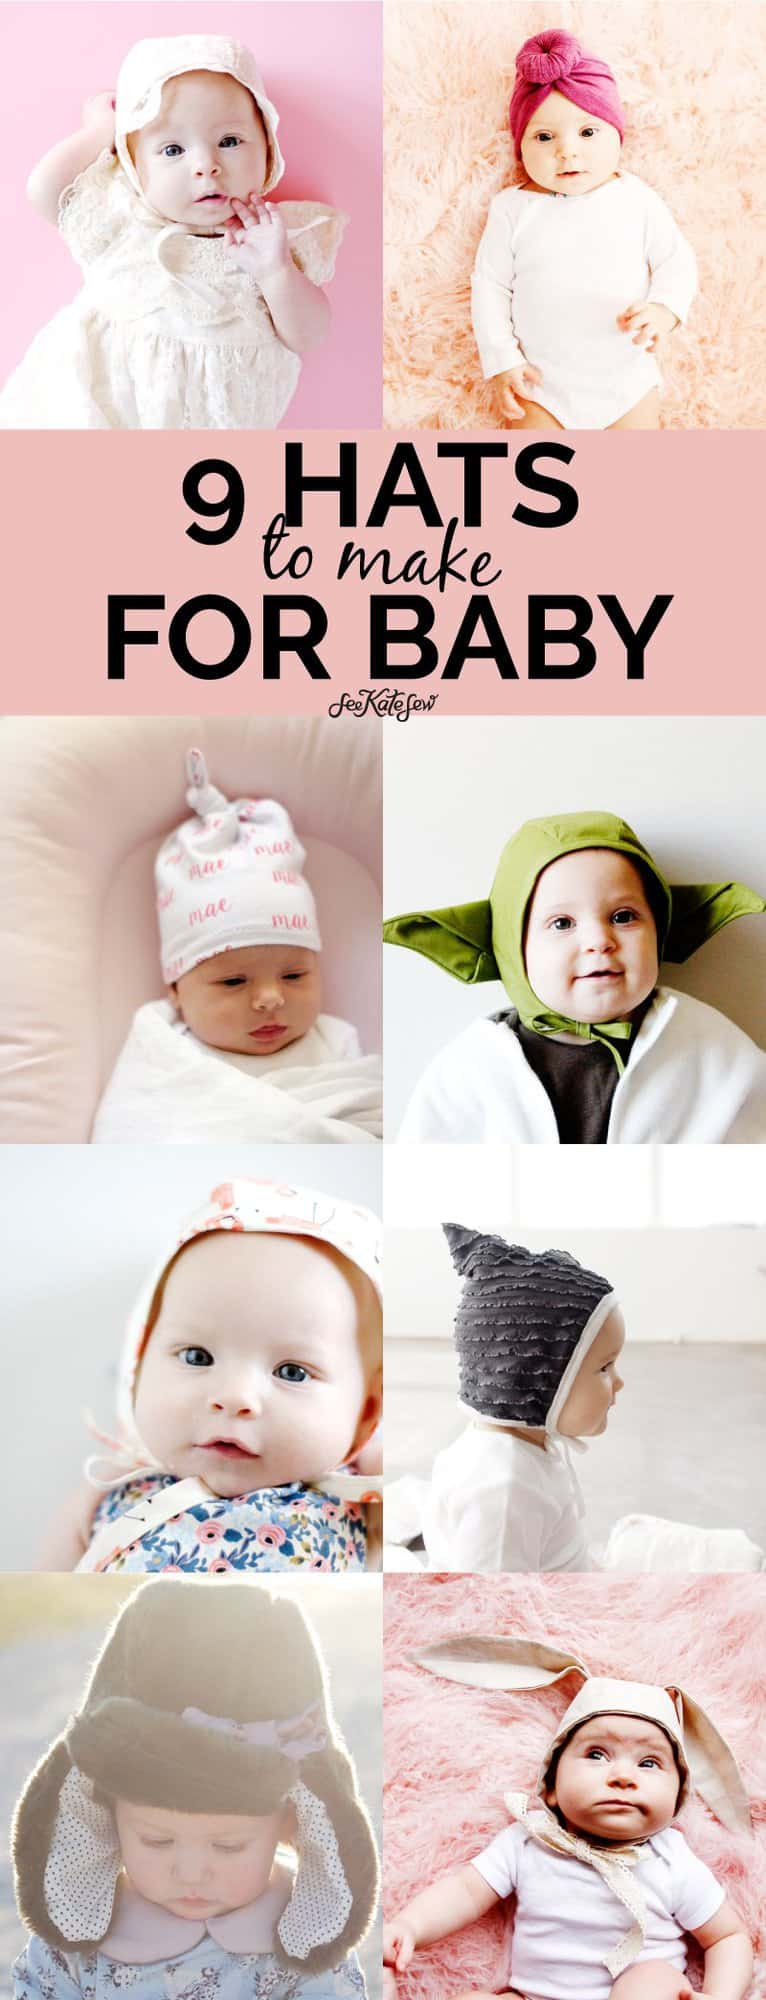 9 baby hats to make